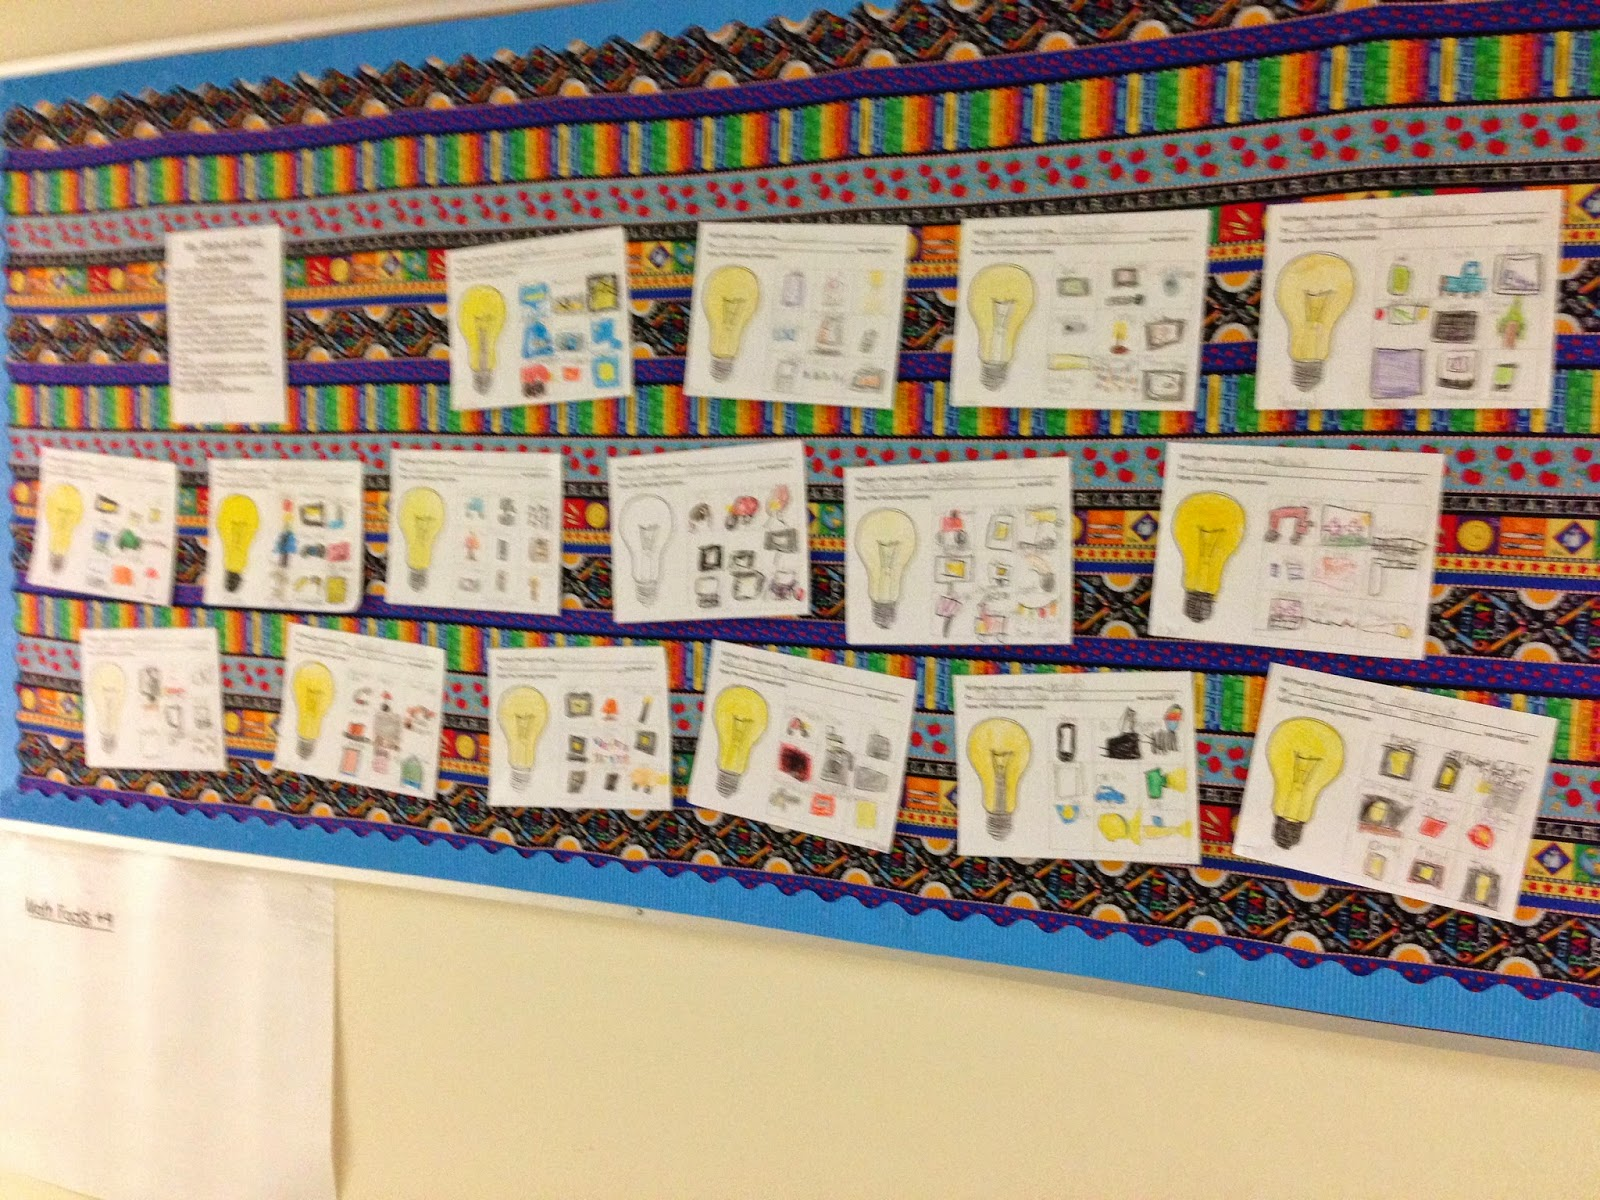 Bishop S Blackboard An Elementary Education Blog Thomas Edison And The Light Bulb